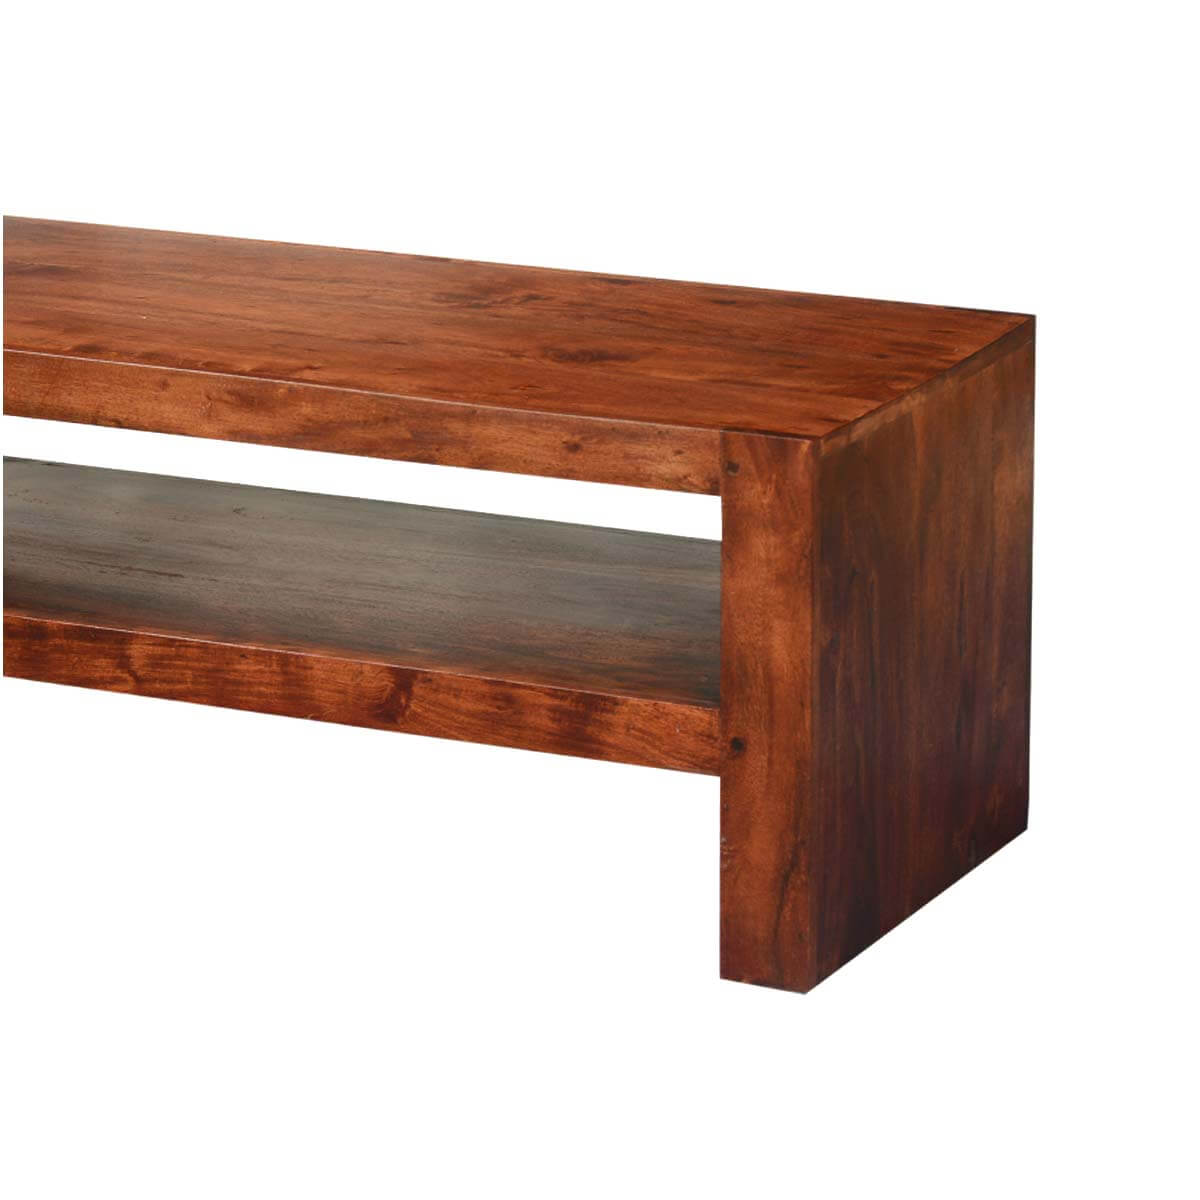 Tv Hidden In Coffee Table Modern Simplicity Acacia Wood Tv Stand Media Case Coffee Table